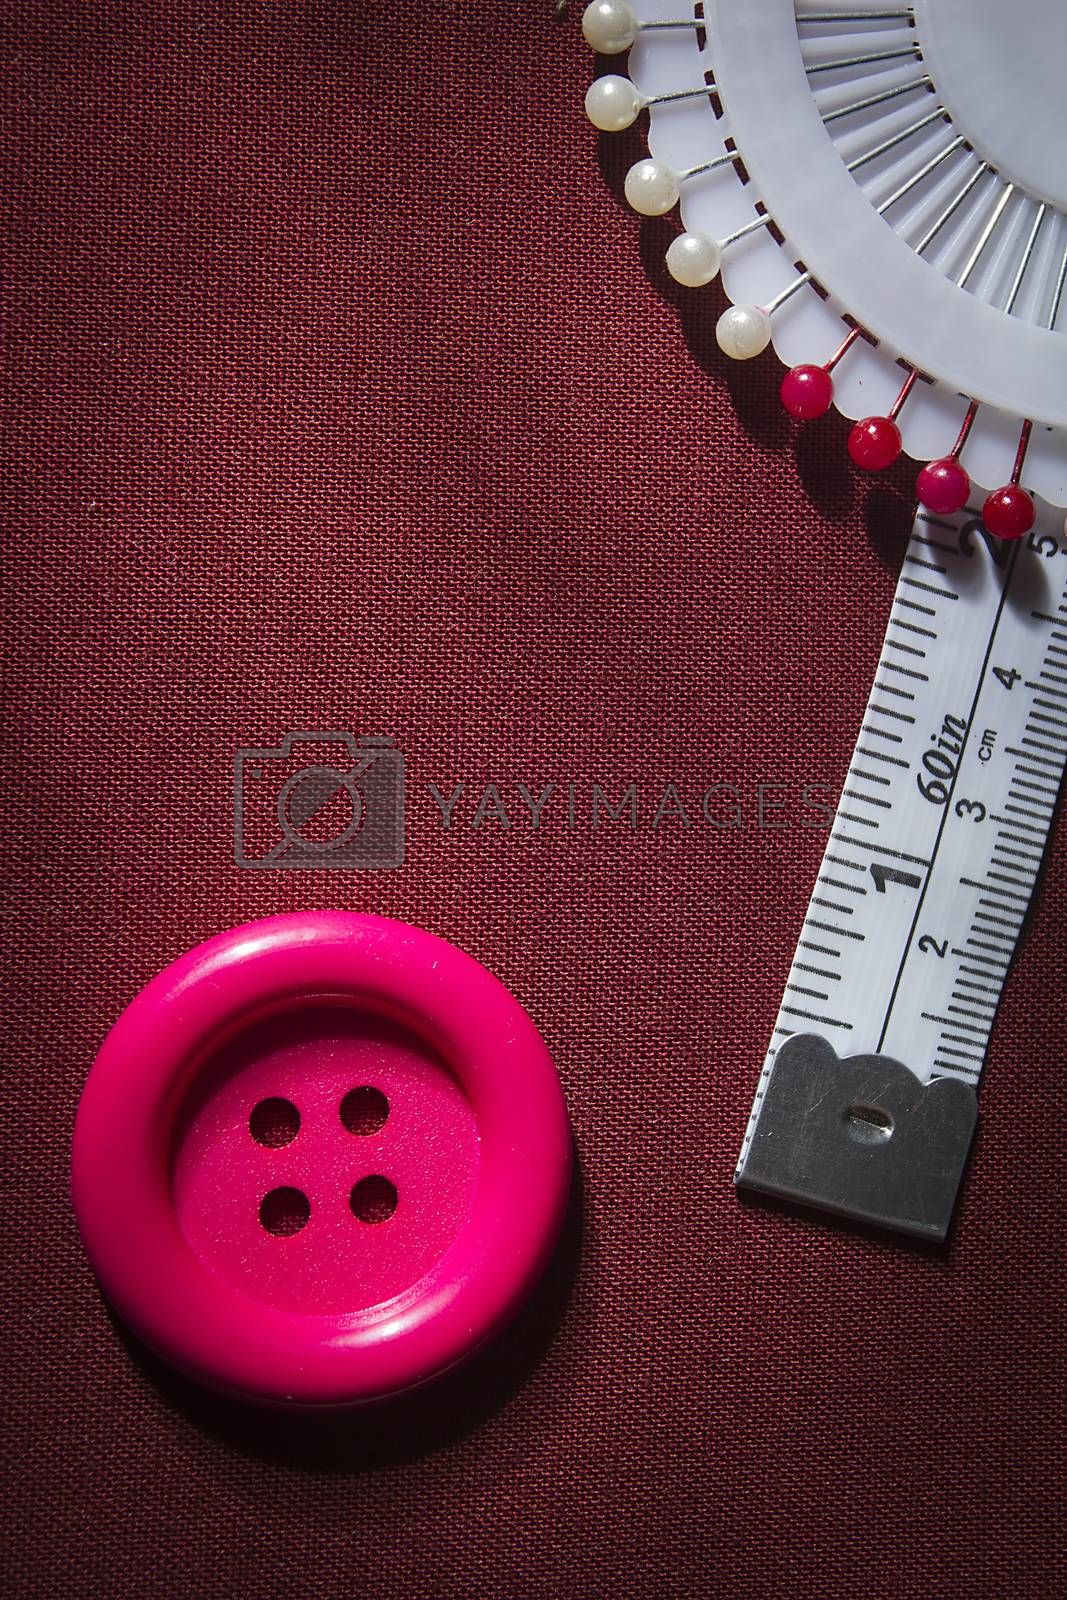 Button and tailor meter on fabric background